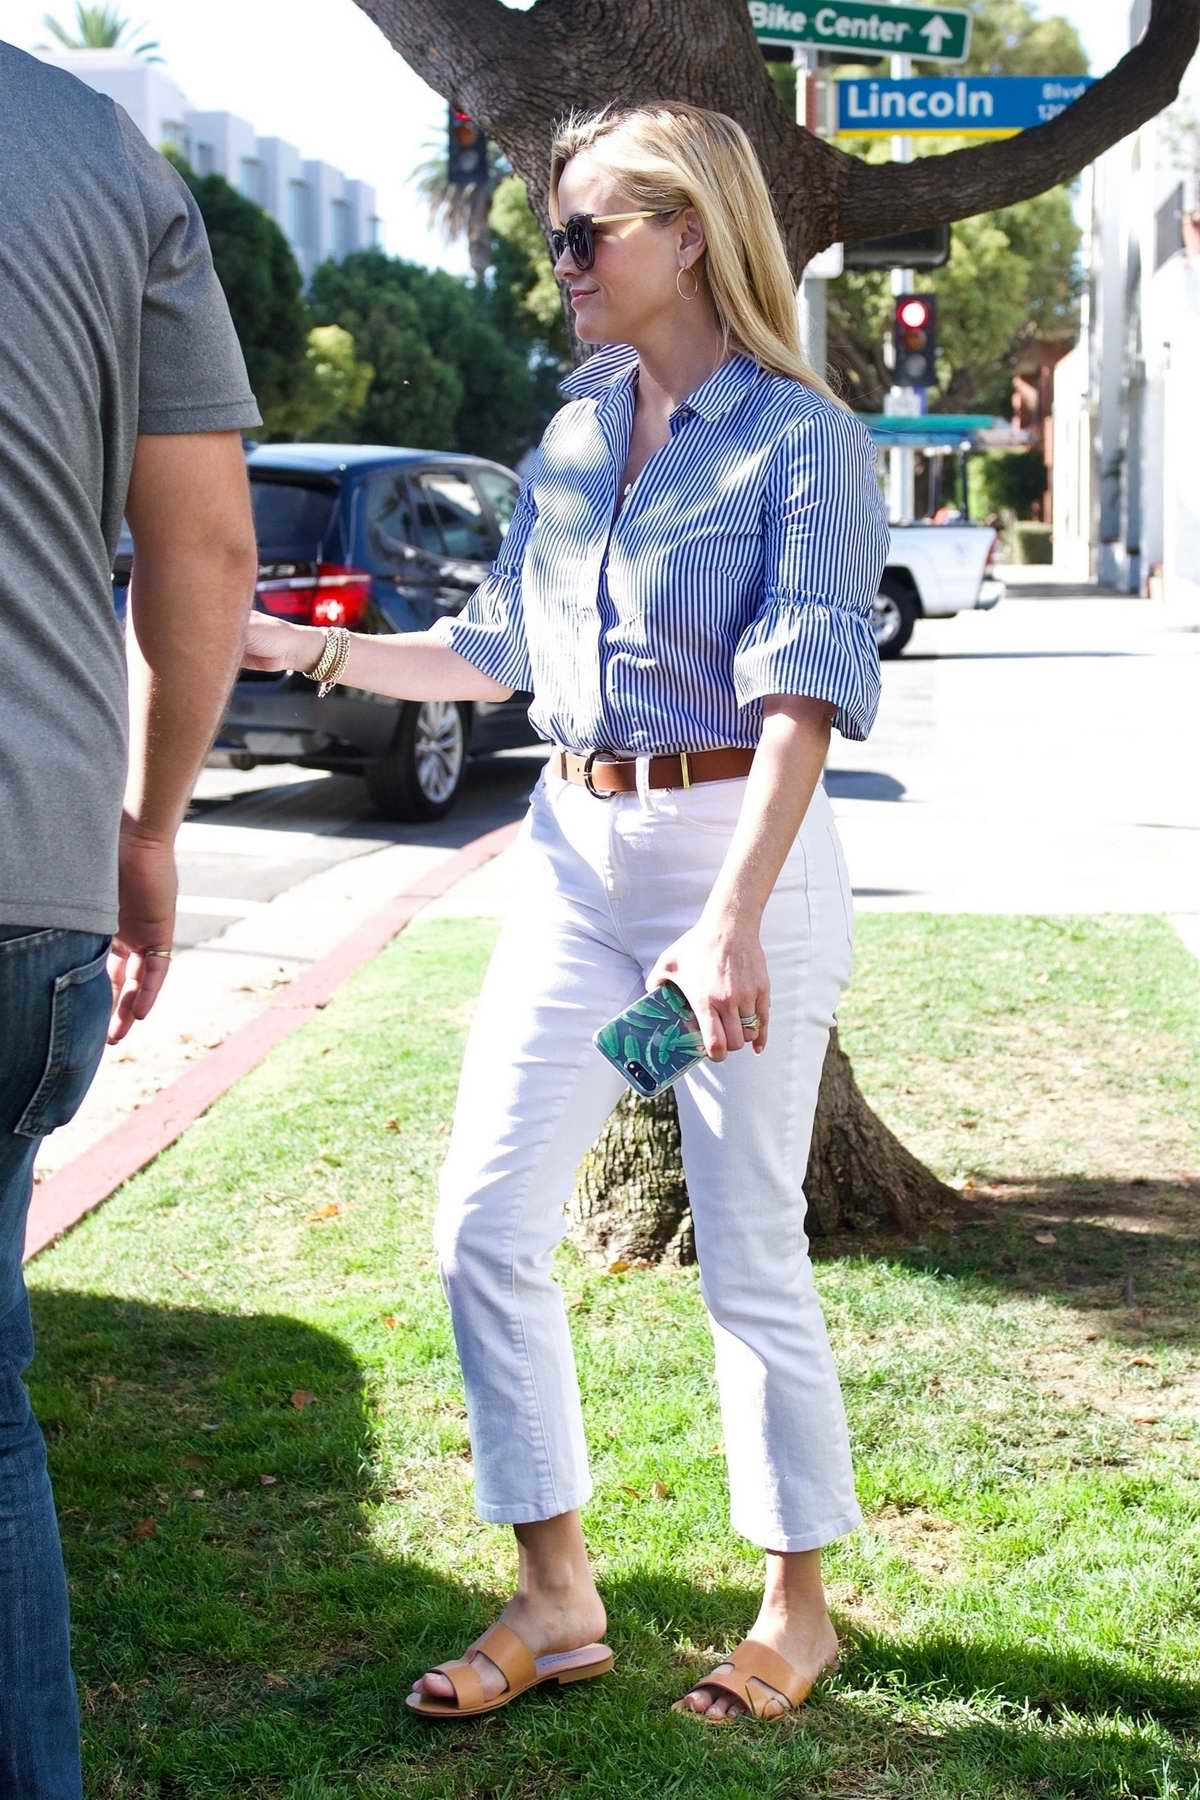 Reese Witherspoon drops her son off at school and then off to a business meeting in Brentwood, Los Angeles